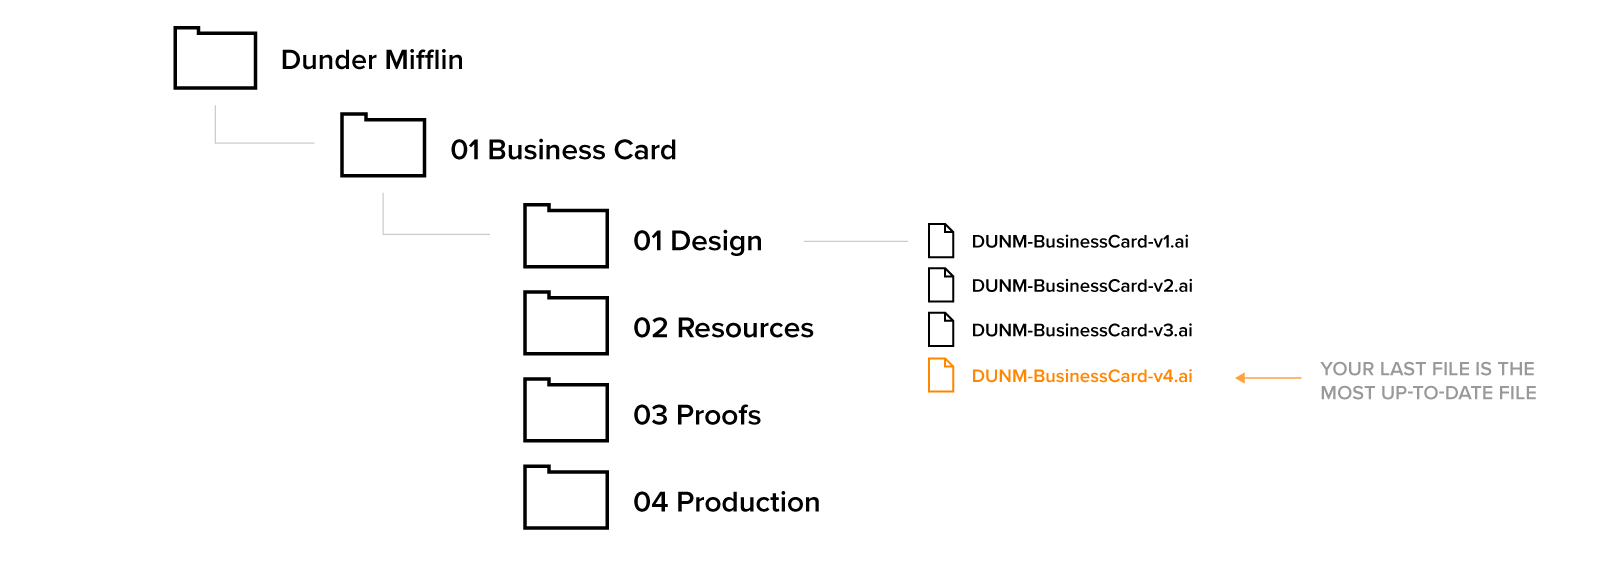 Example of design file revision naming system